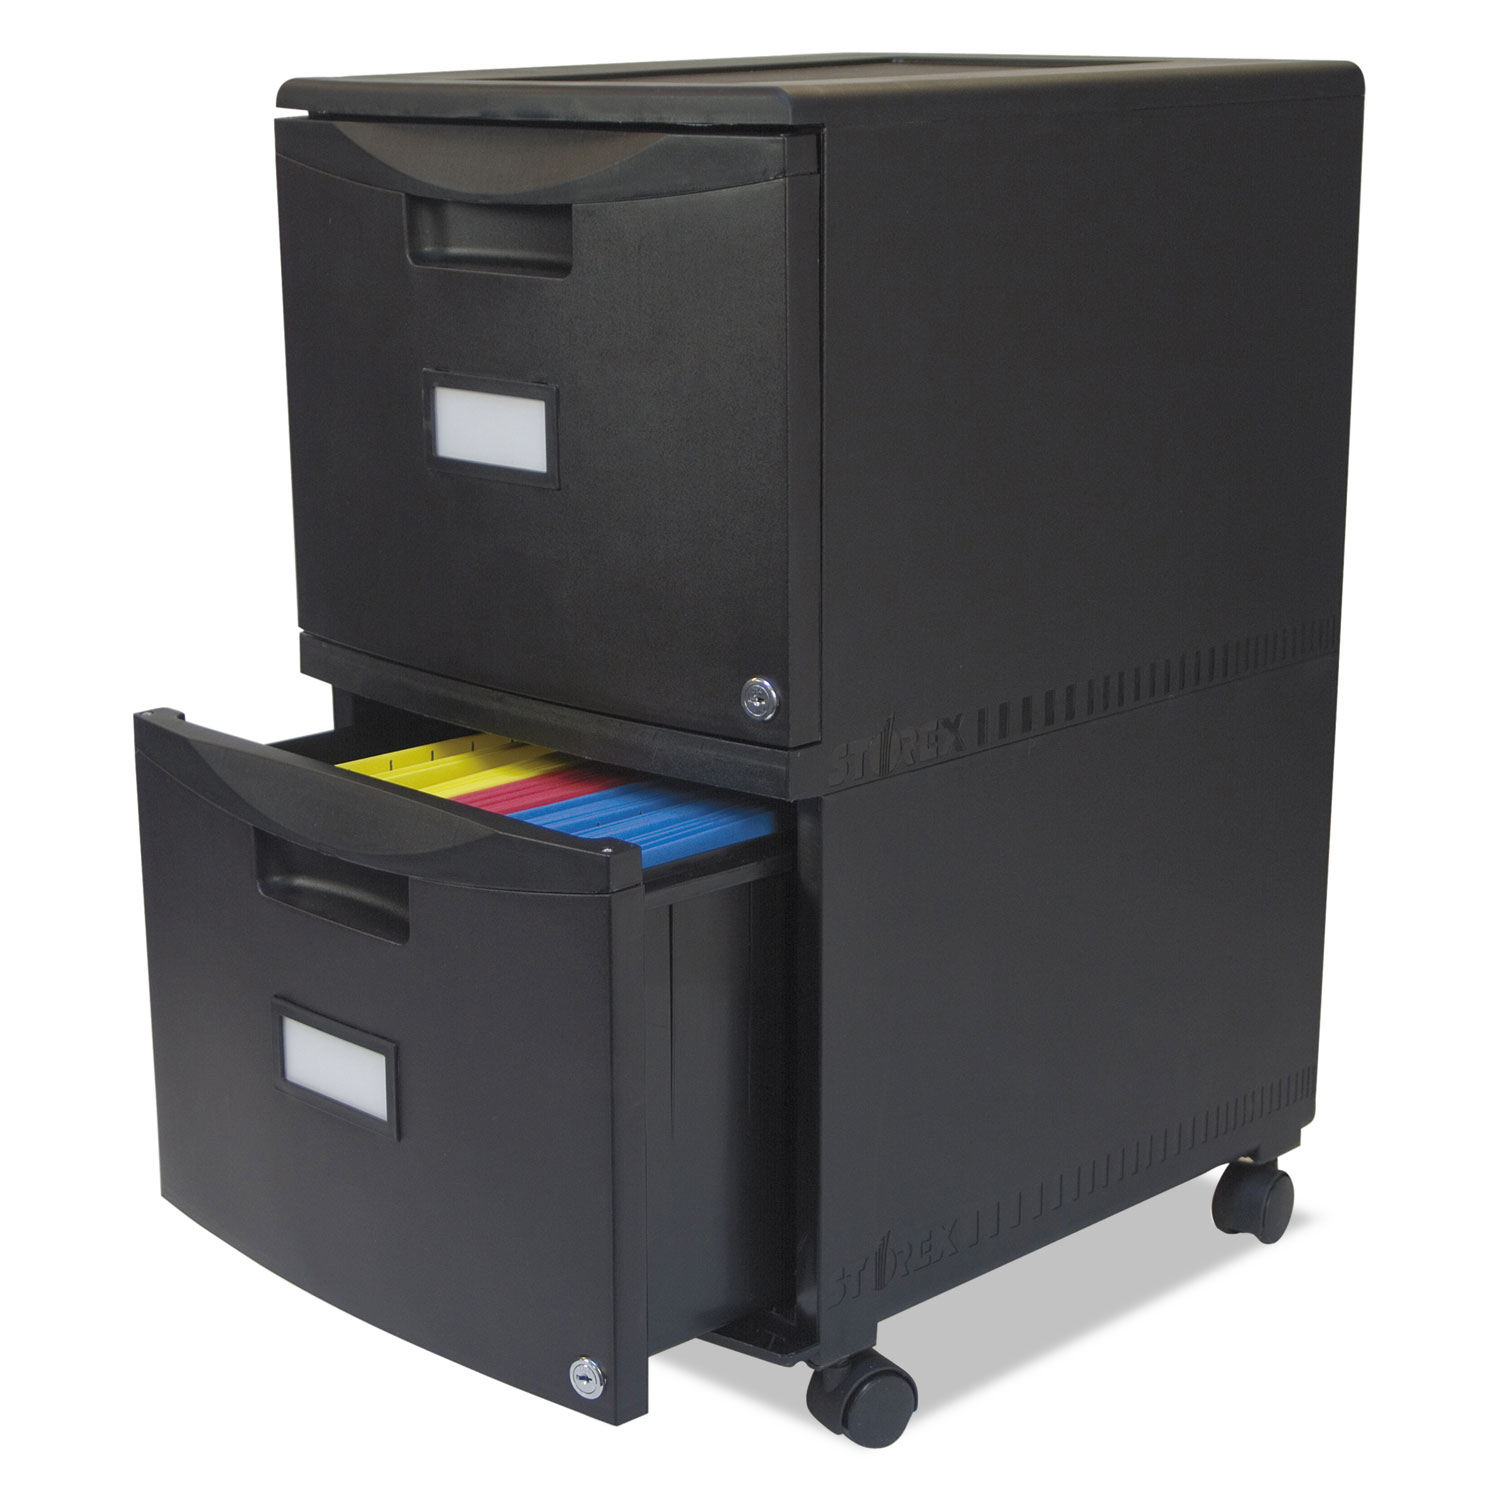 Two Drawer Mobile Filing Cabinet By Storex Stx61312b01c